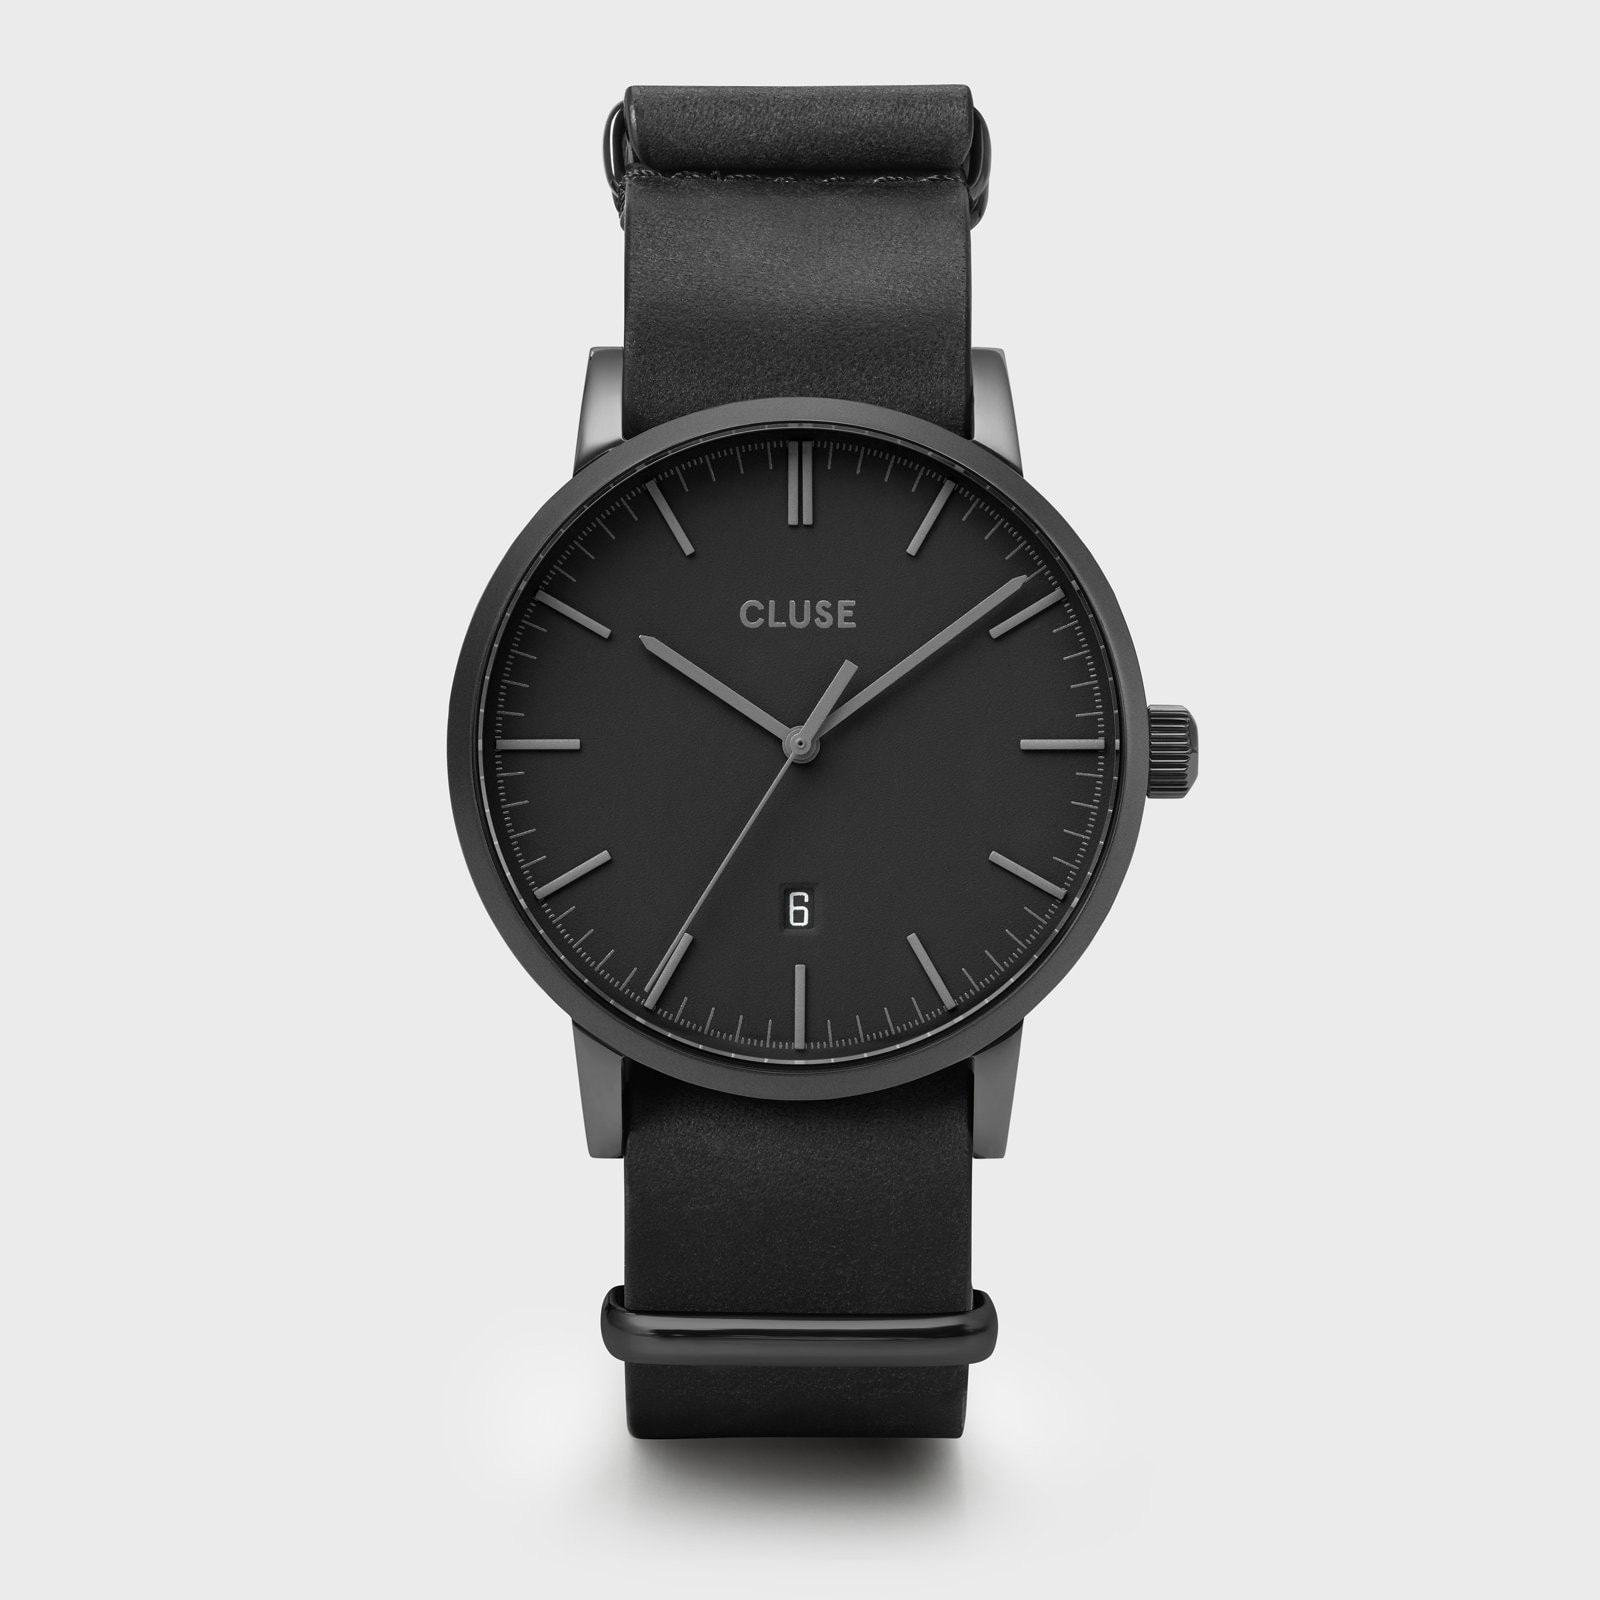 CLUSE Aravis nato leather black, black/black CW0101501010 - Watch